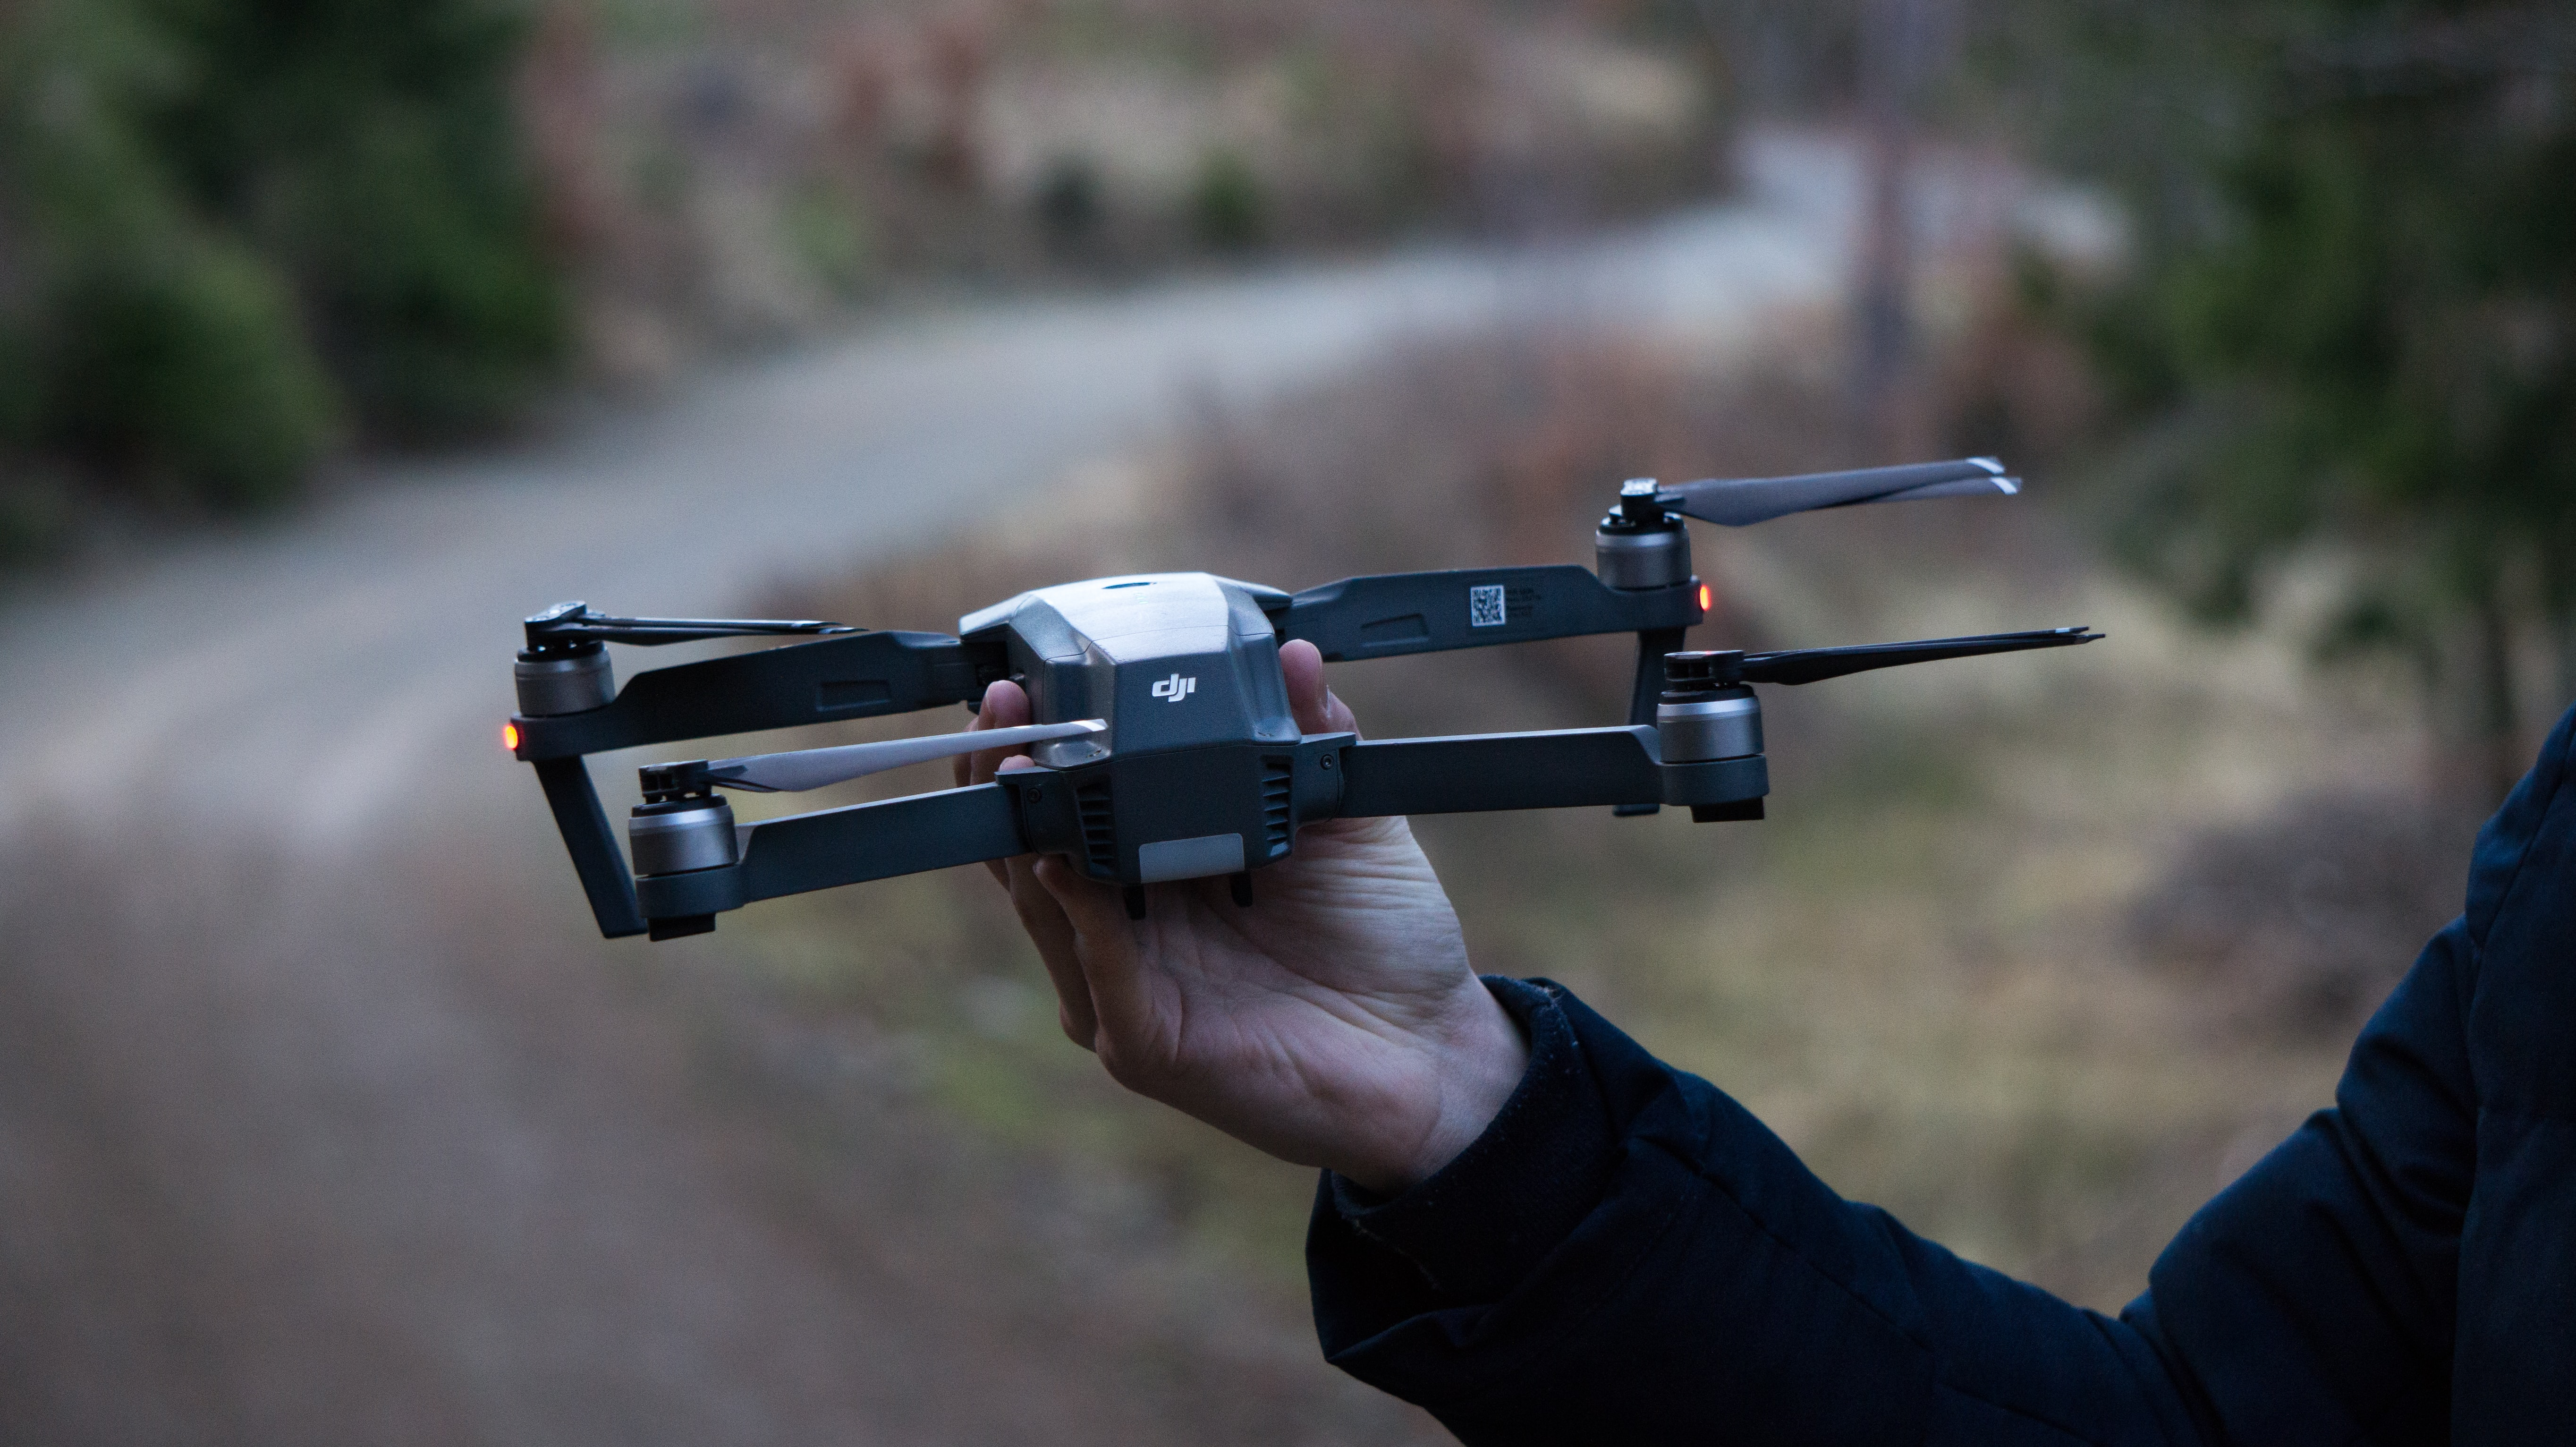 person holding black DJI drone